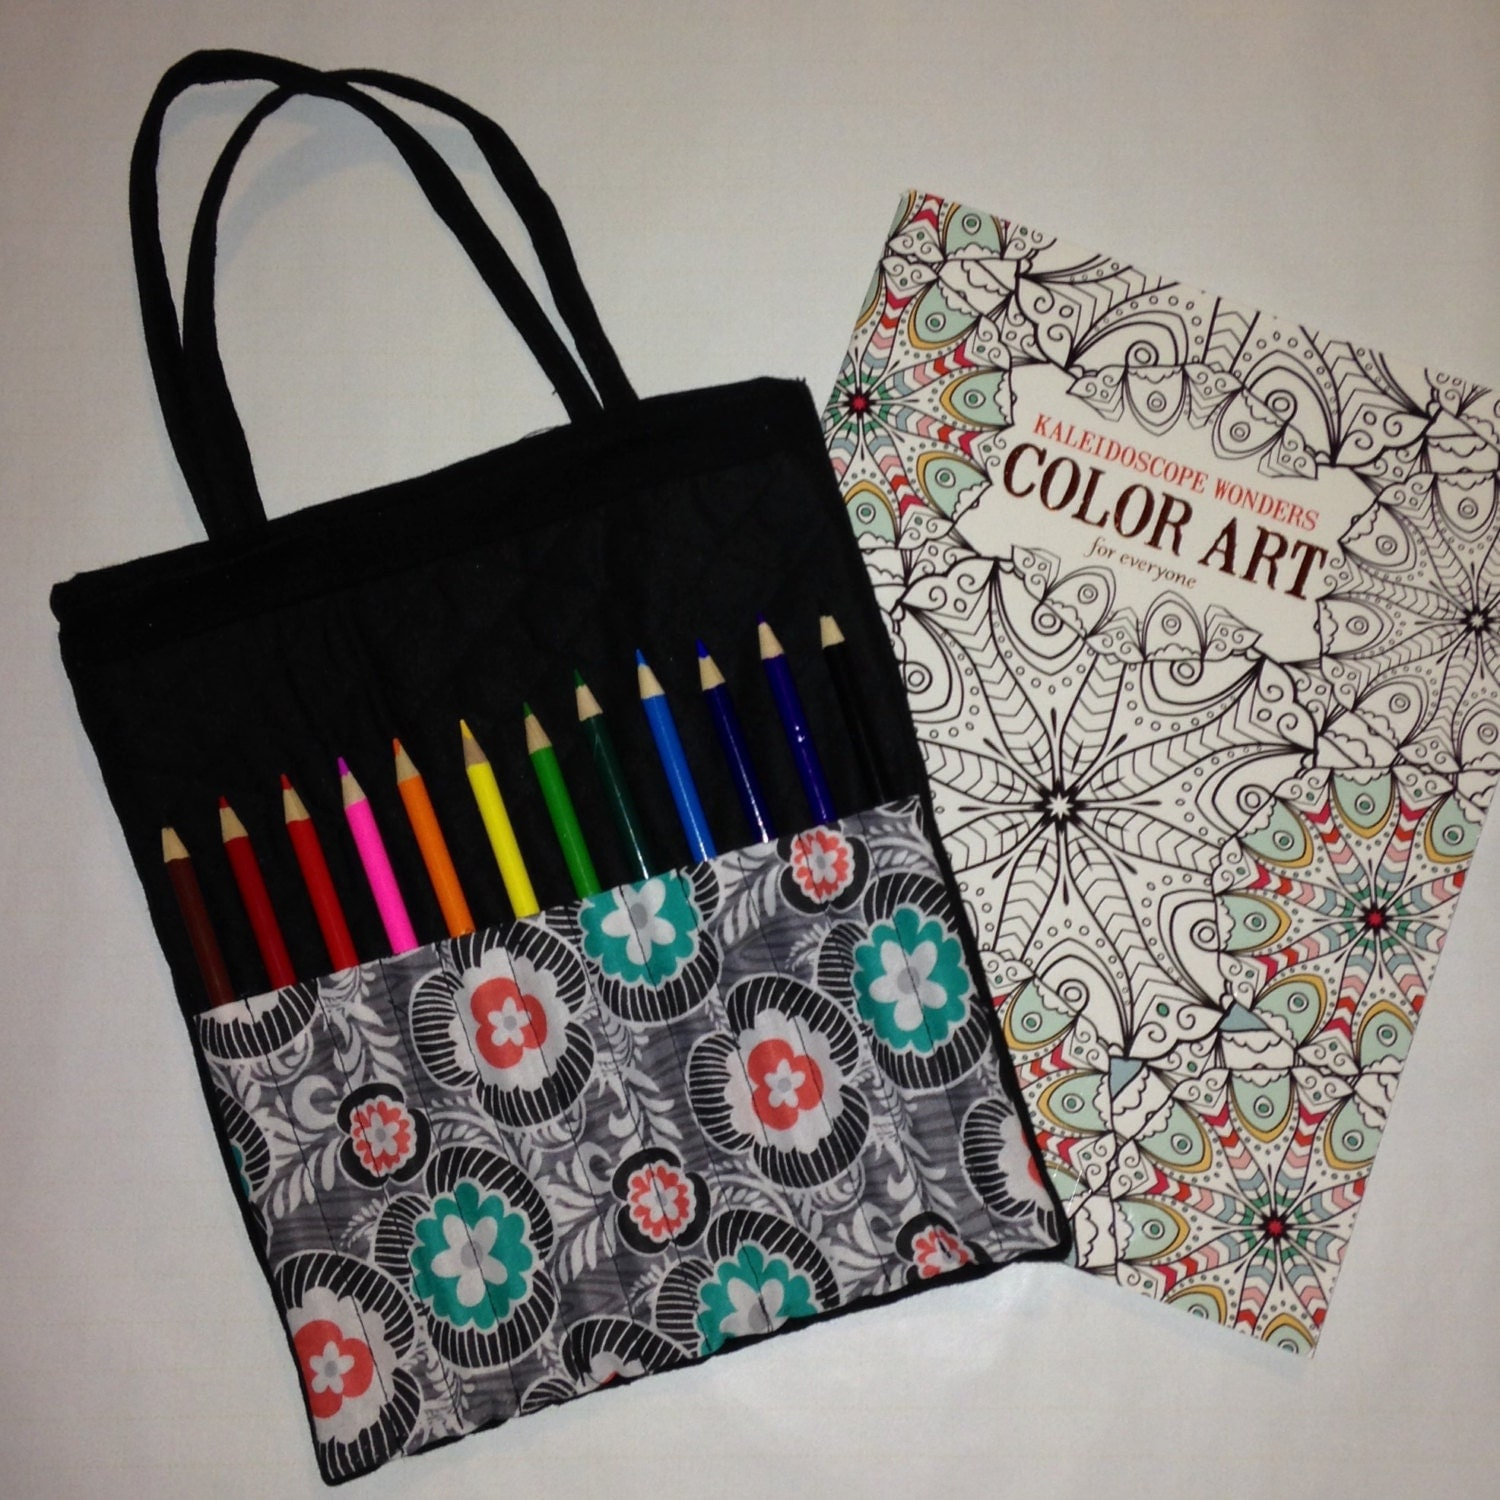 coloring gift set for teens and adults tote bag book and 12. Black Bedroom Furniture Sets. Home Design Ideas